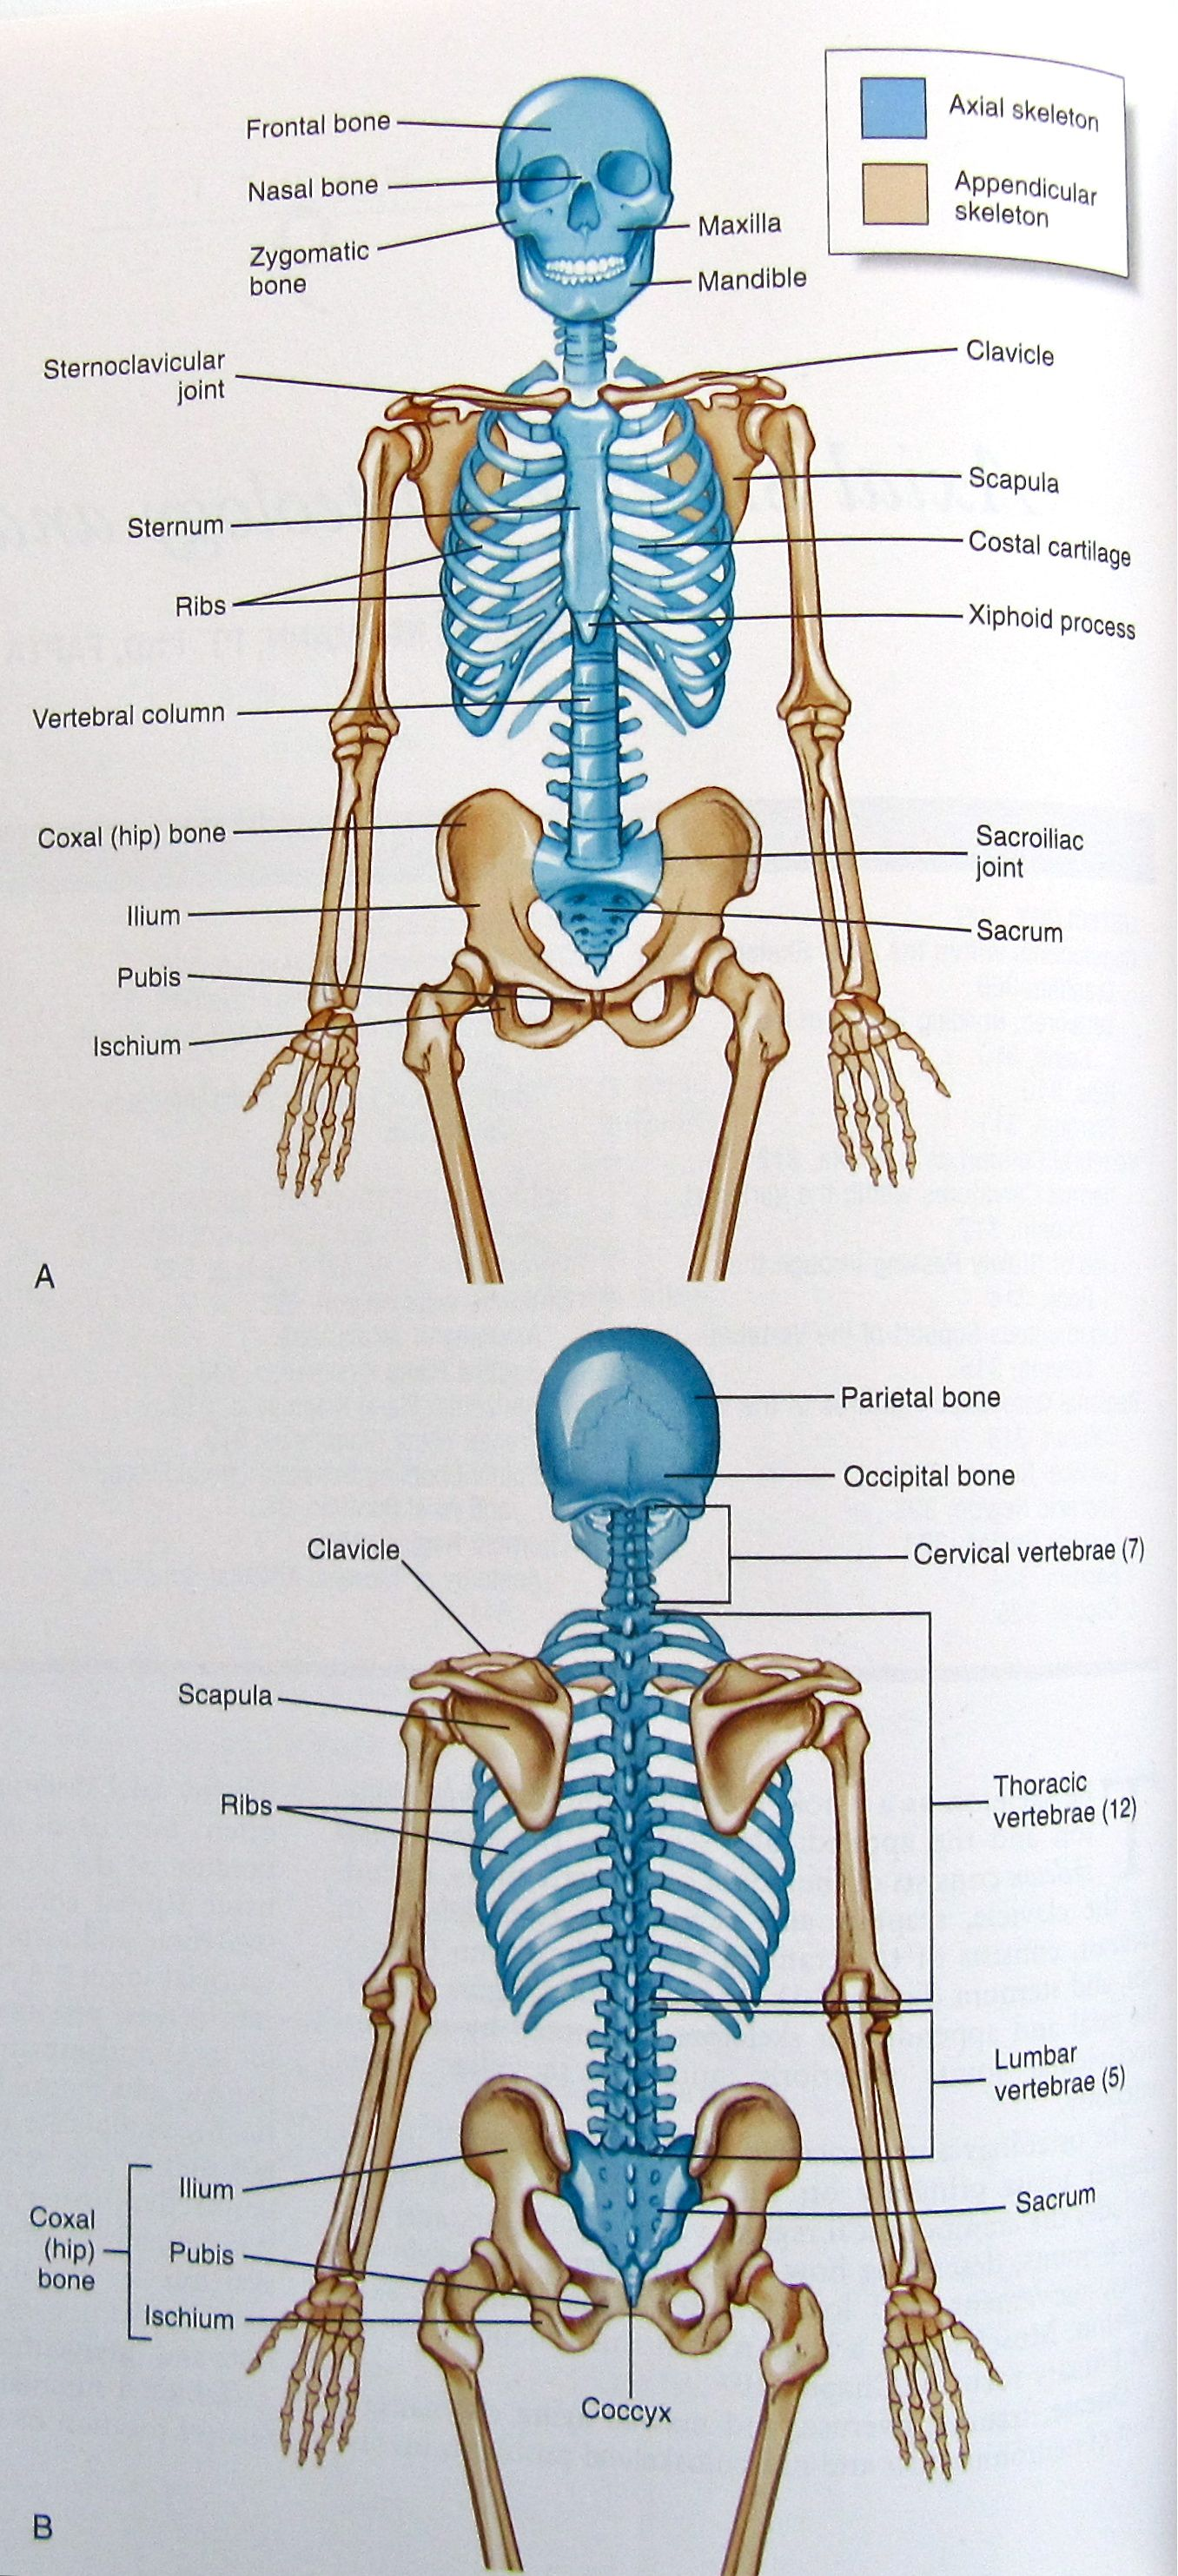 axial and appendicular system Looking for online definition of axial skeleton in the medical dictionary axial skeleton explanation free what is axial skeleton axial (80 bones) appendicular (126 bones) head trunk upper extremities lower extremities the nervous system axial skeleton the bones that lie centrally in.